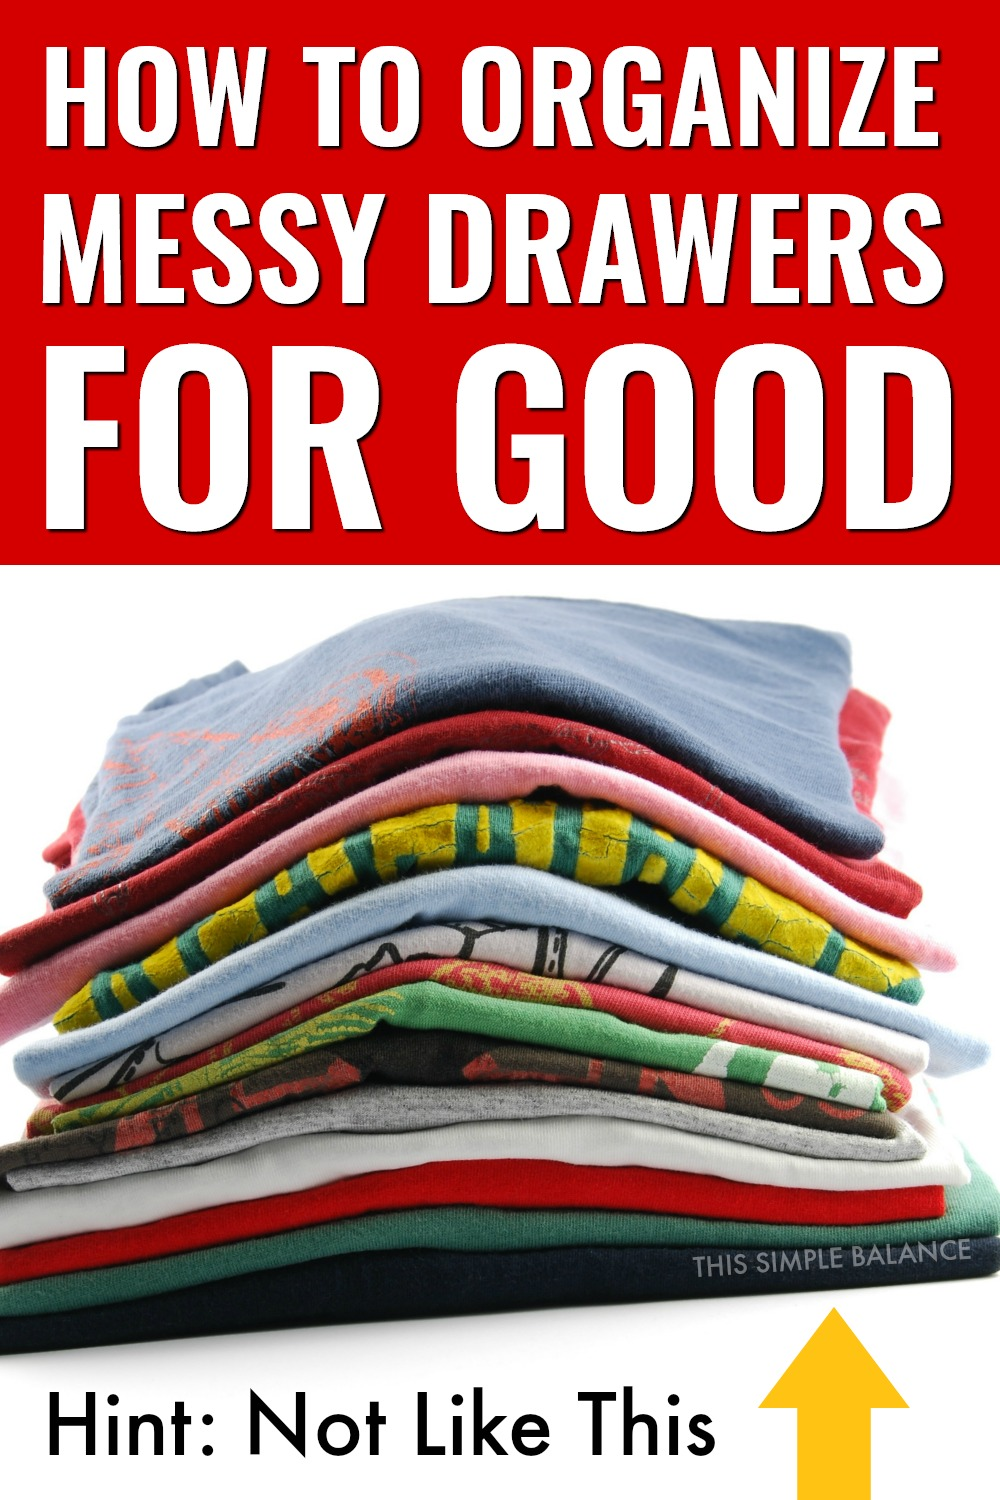 Organizing Messy Drawers when you have messy kids and messy husbands can be so frustrating. Fix the messy drawer problem once and for all with this folding method. #organization #cleanhousewithkids